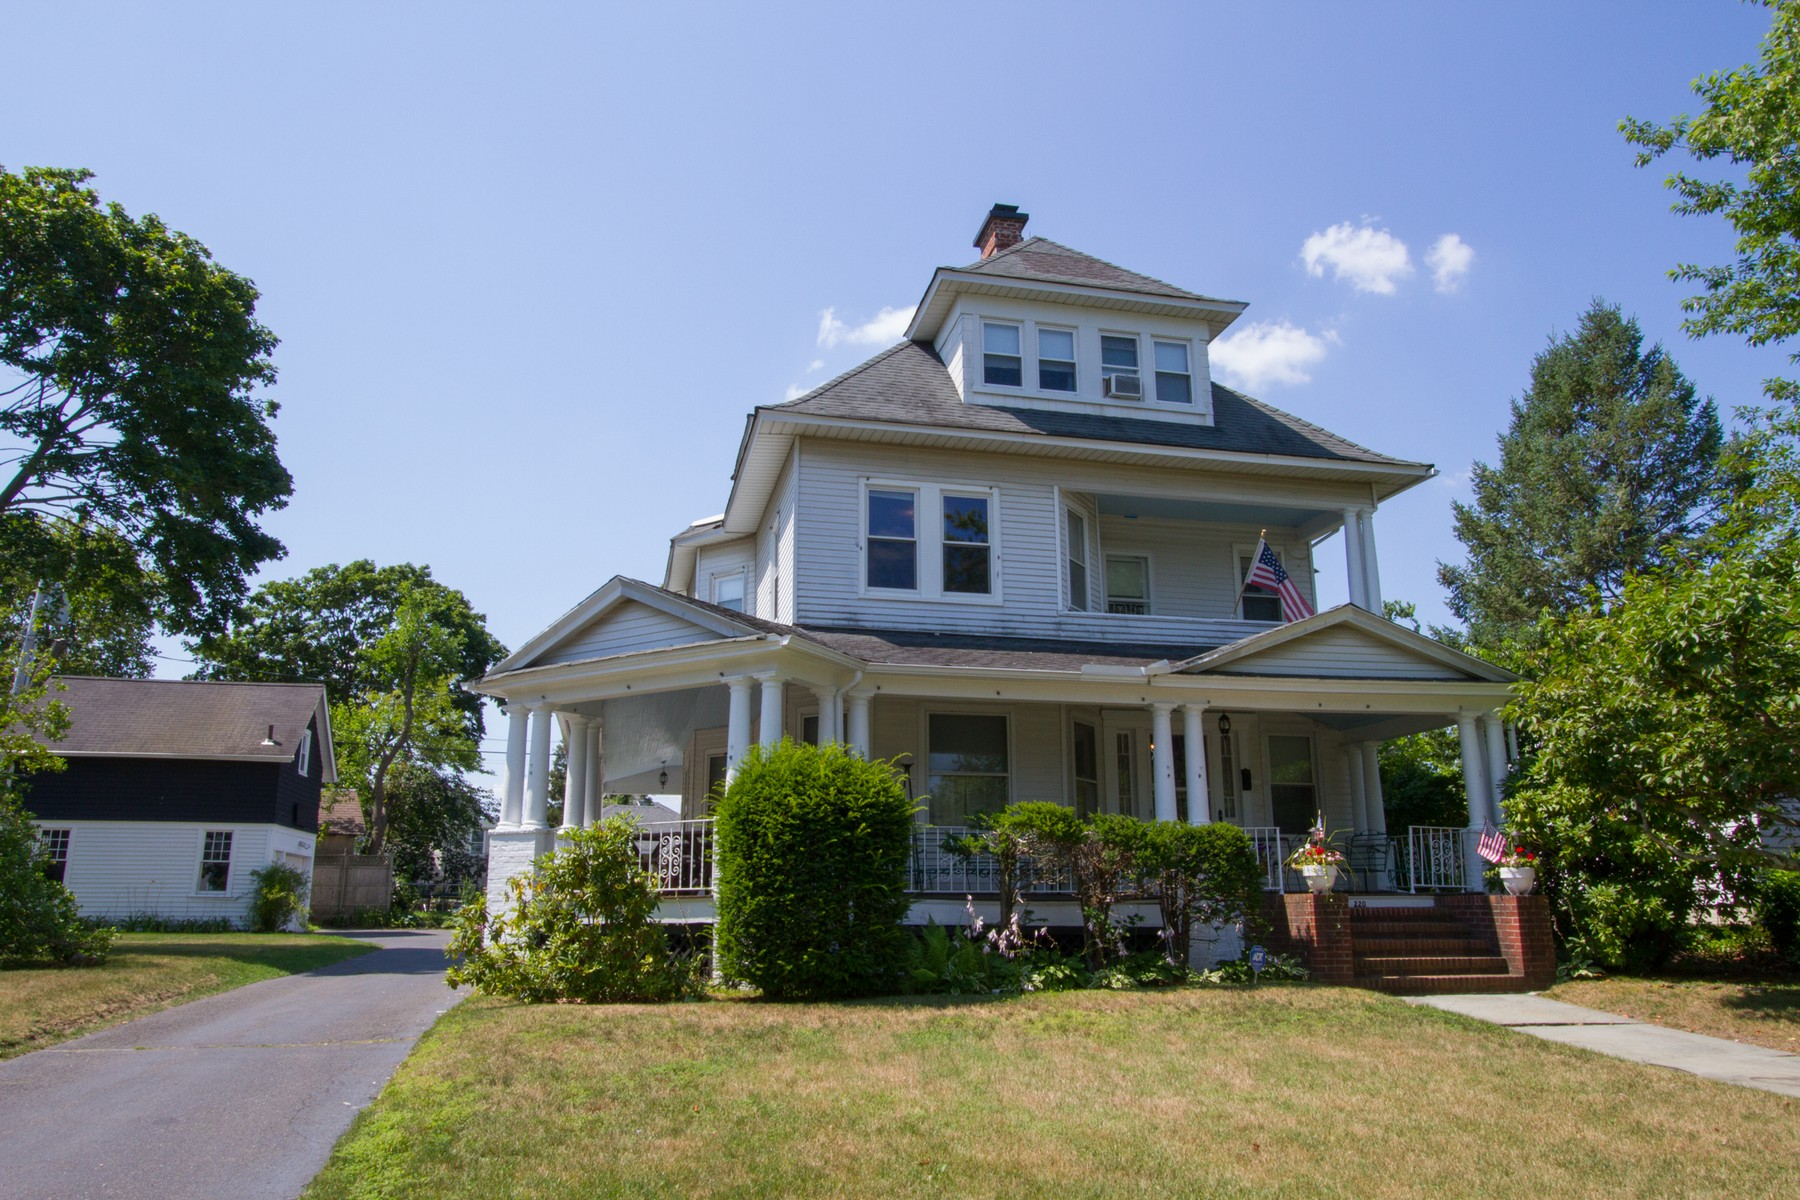 Single Family Home for Sale at Quintessential Beach House 220 Elberon Ave Allenhurst, New Jersey, 07711 United States